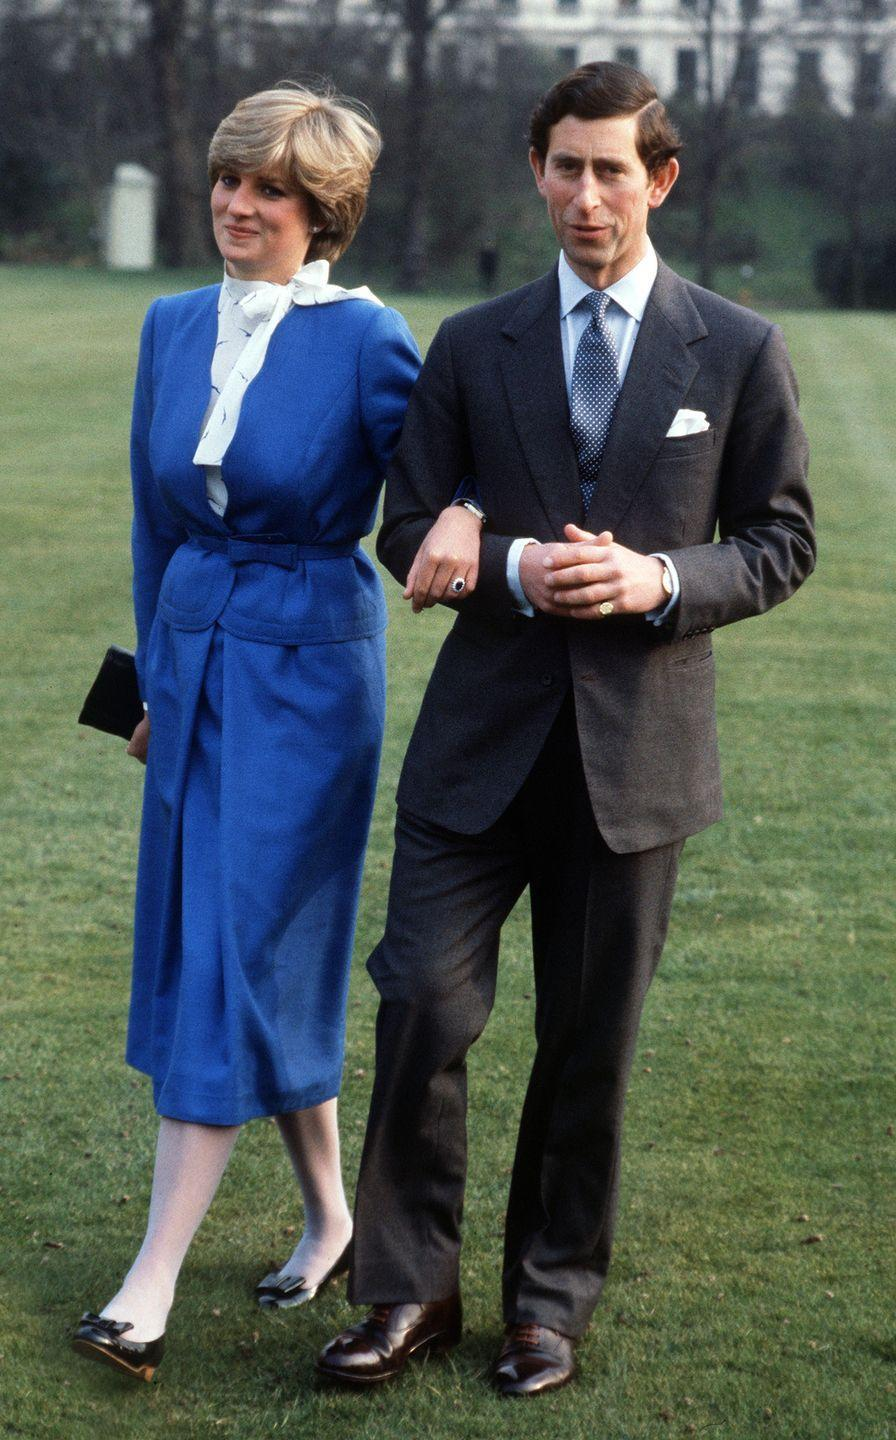 <p>For the photographs, Diana wore a cobalt blue skirt suit, made by British label Cojana. She paired the suit with a white blouse with a bow neck, white stockings, low black heels, and a black leather clutch. </p>